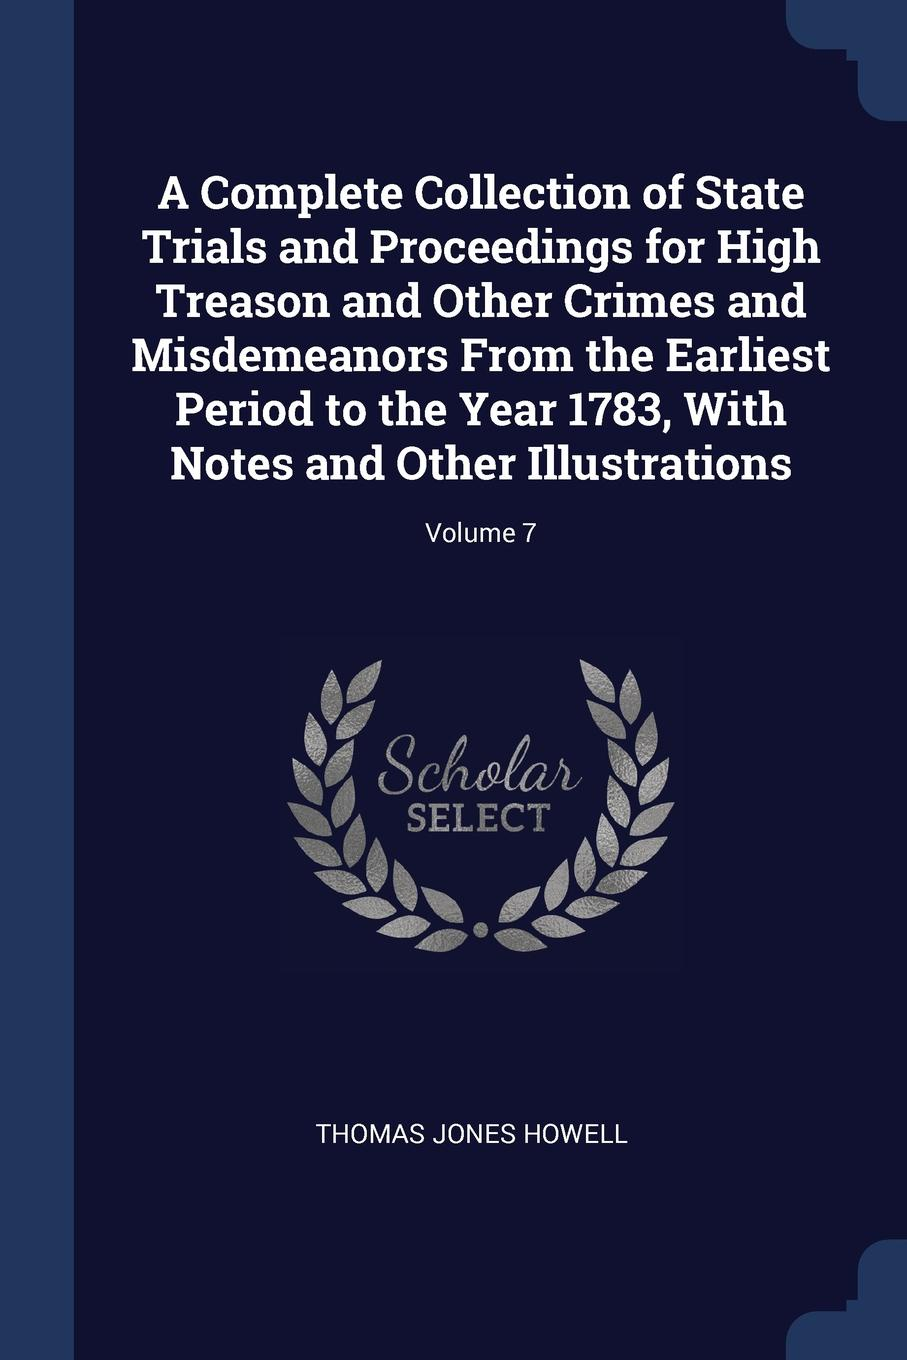 Thomas Jones Howell A Complete Collection of State Trials and Proceedings for High Treason Other Crimes Misdemeanors From the Earliest Period to Year 1783, With Notes Illustrations; Volume 7